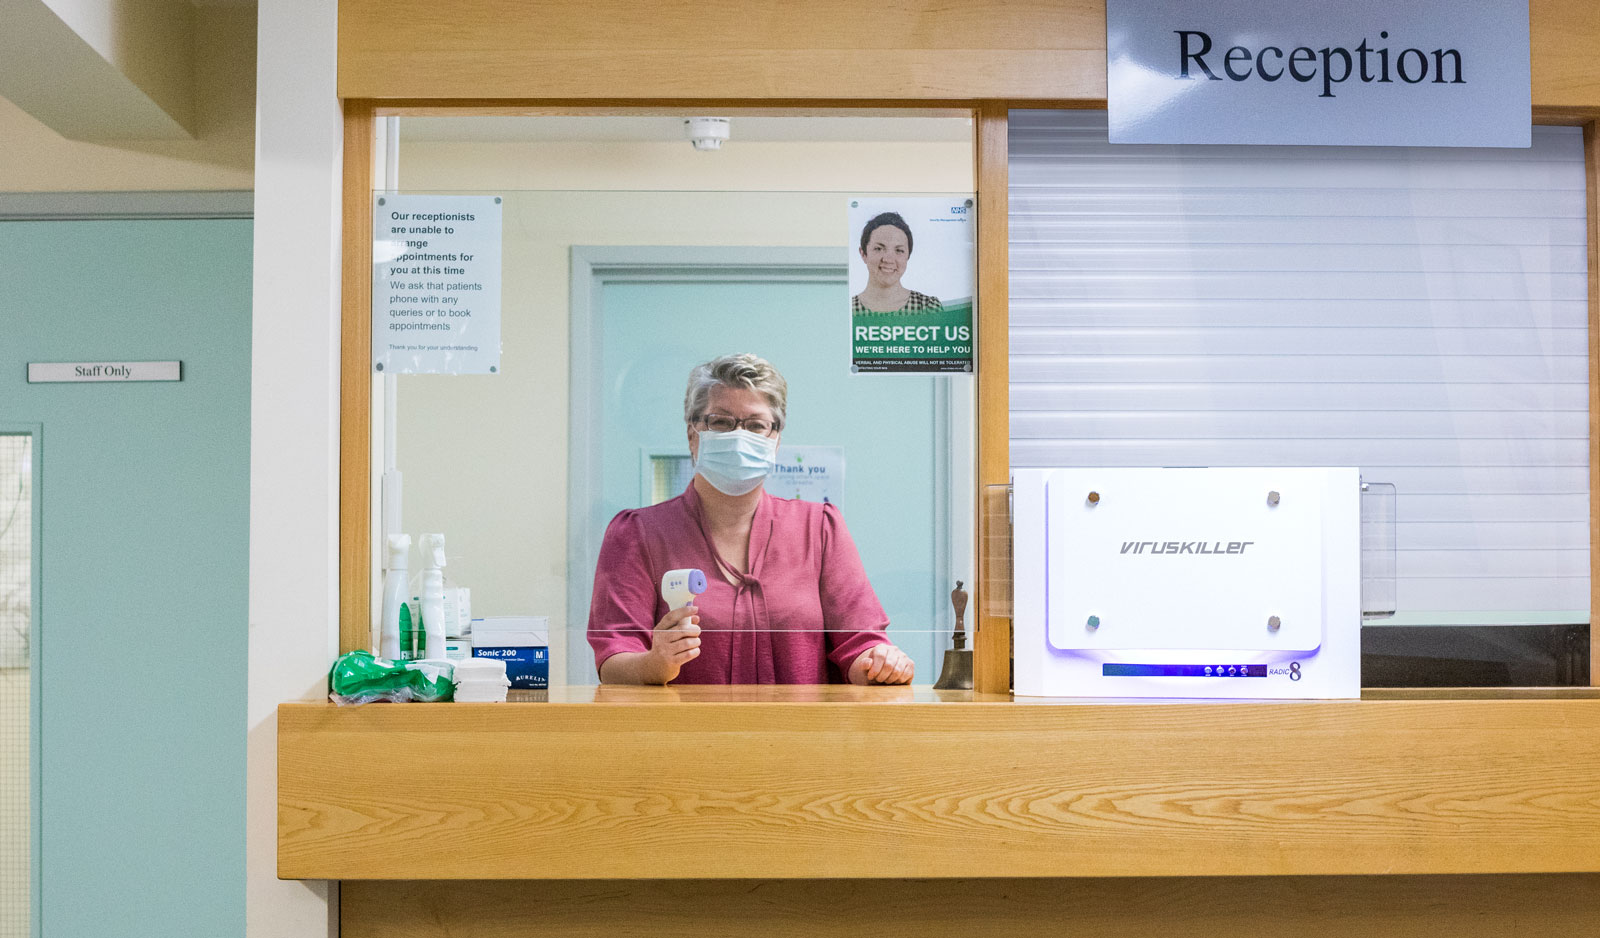 Clean Air in Doctors Reception